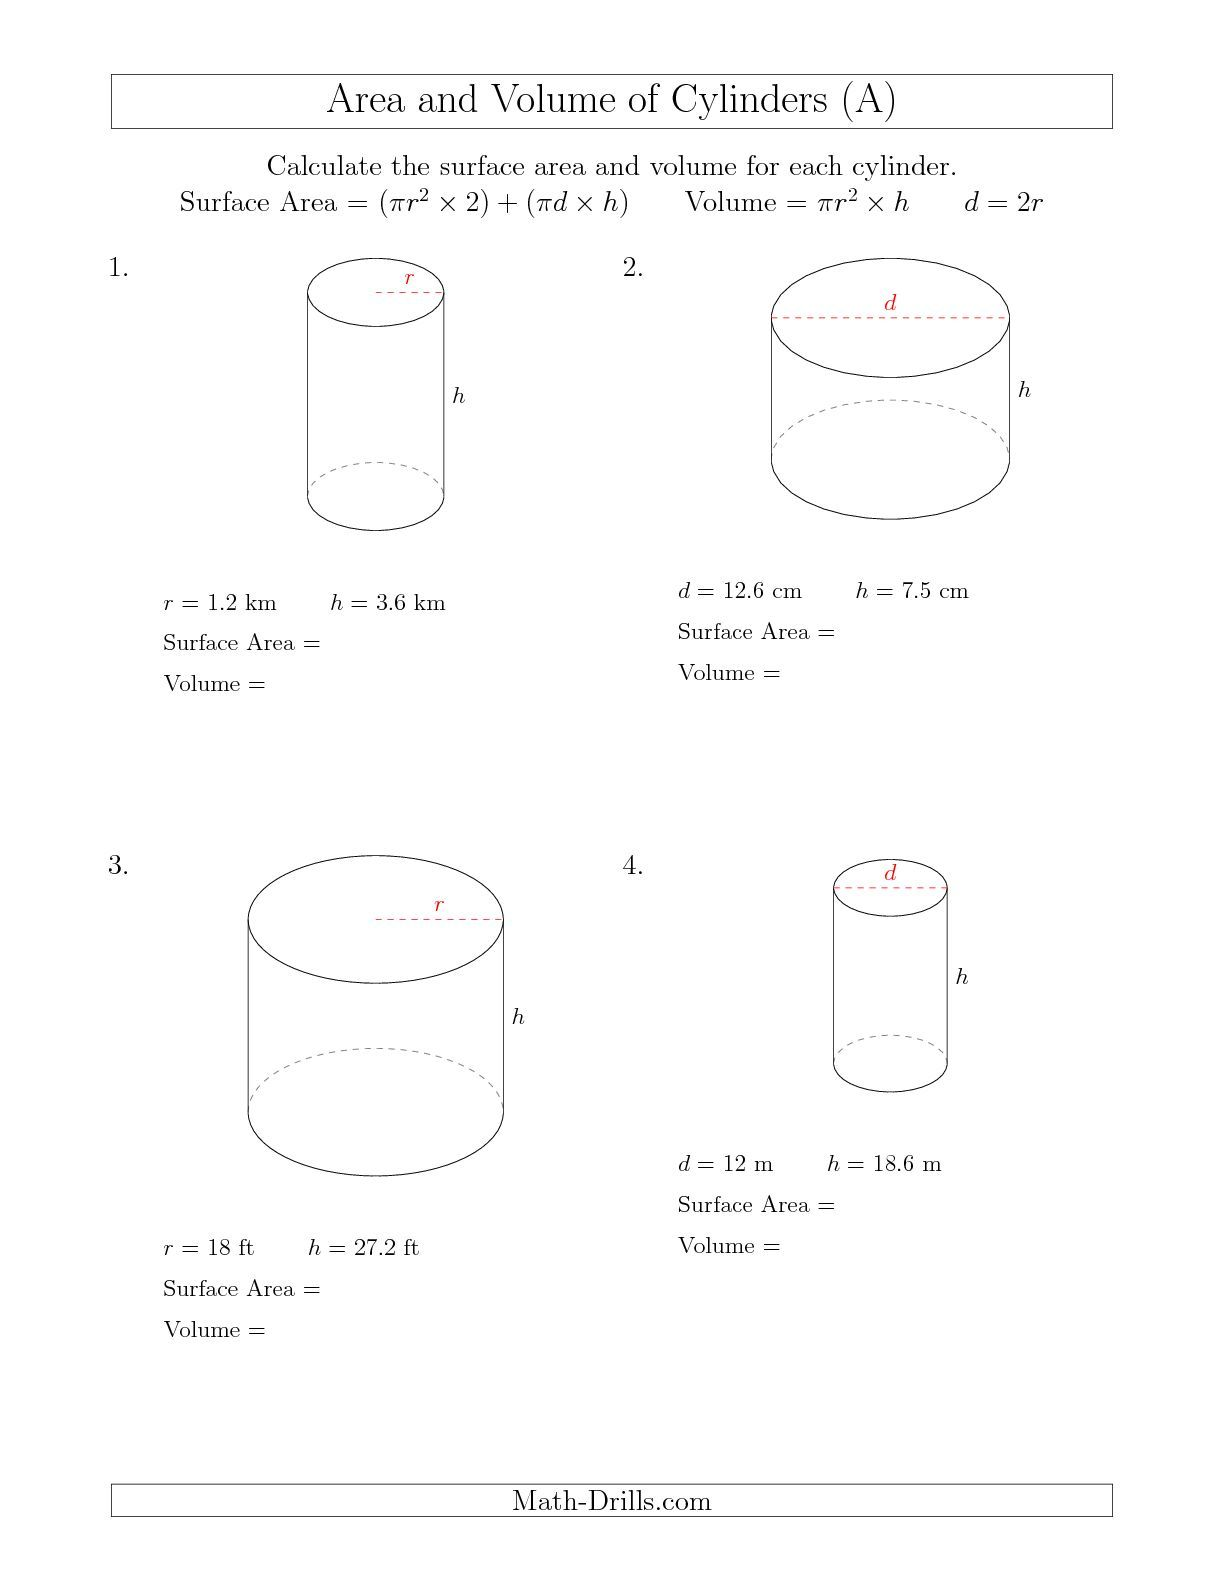 worksheet Volume Of Cylinders And Cones Worksheet updated 2015 10 28 calculating surface area and volume of cylinders a math worksheet